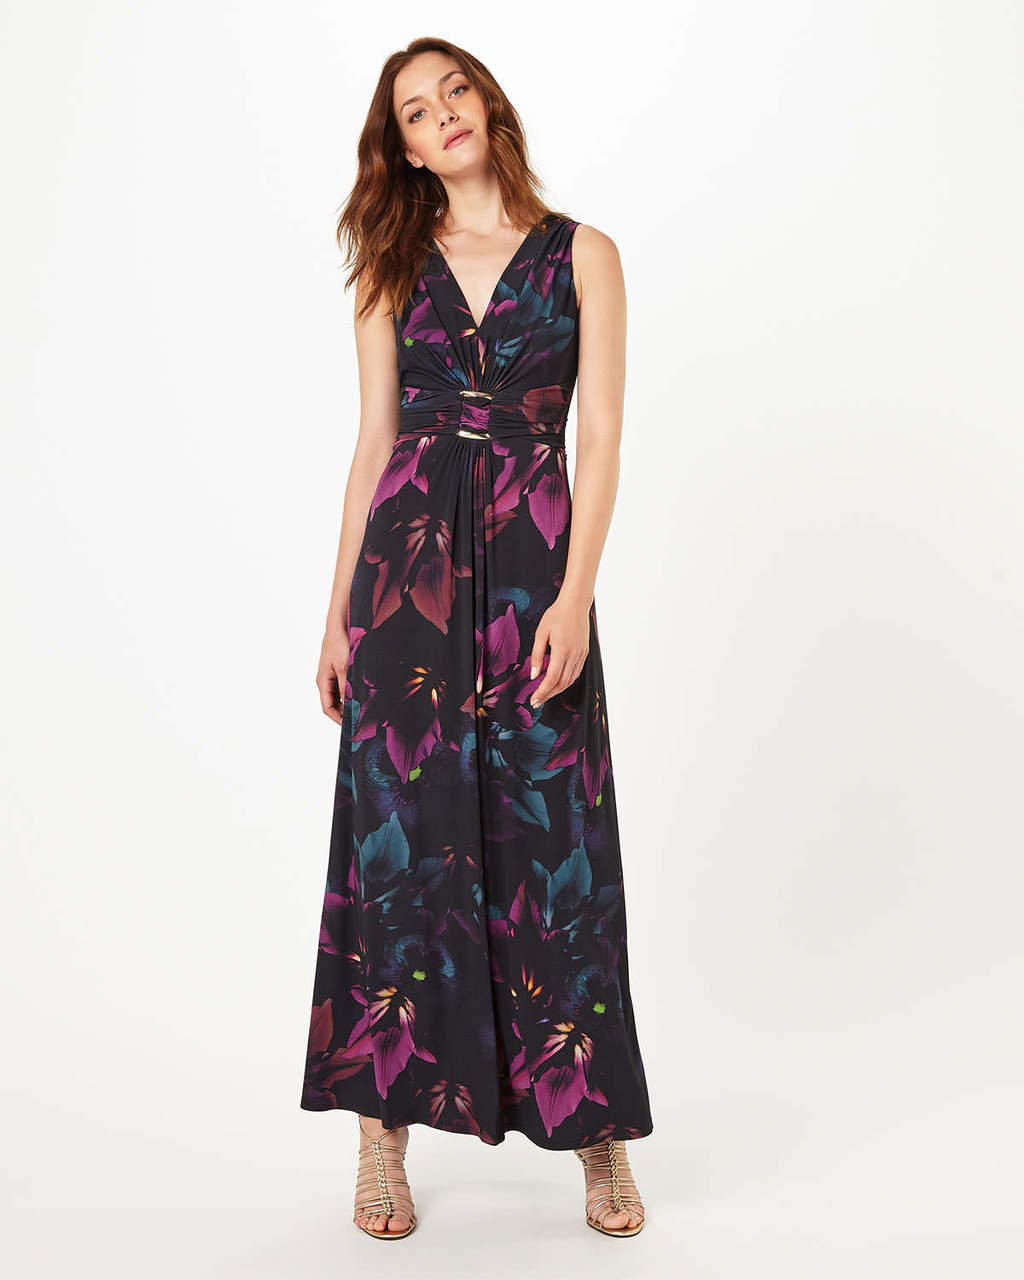 Monica Printed Maxi Dress - neckline: low v-neck; fit: fitted at waist; sleeve style: sleeveless; style: maxi dress; length: ankle length; secondary colour: hot pink; predominant colour: black; occasions: evening; fibres: polyester/polyamide - stretch; sleeve length: sleeveless; texture group: sheer fabrics/chiffon/organza etc.; pattern type: fabric; pattern: patterned/print; multicoloured: multicoloured; season: a/w 2016; wardrobe: event